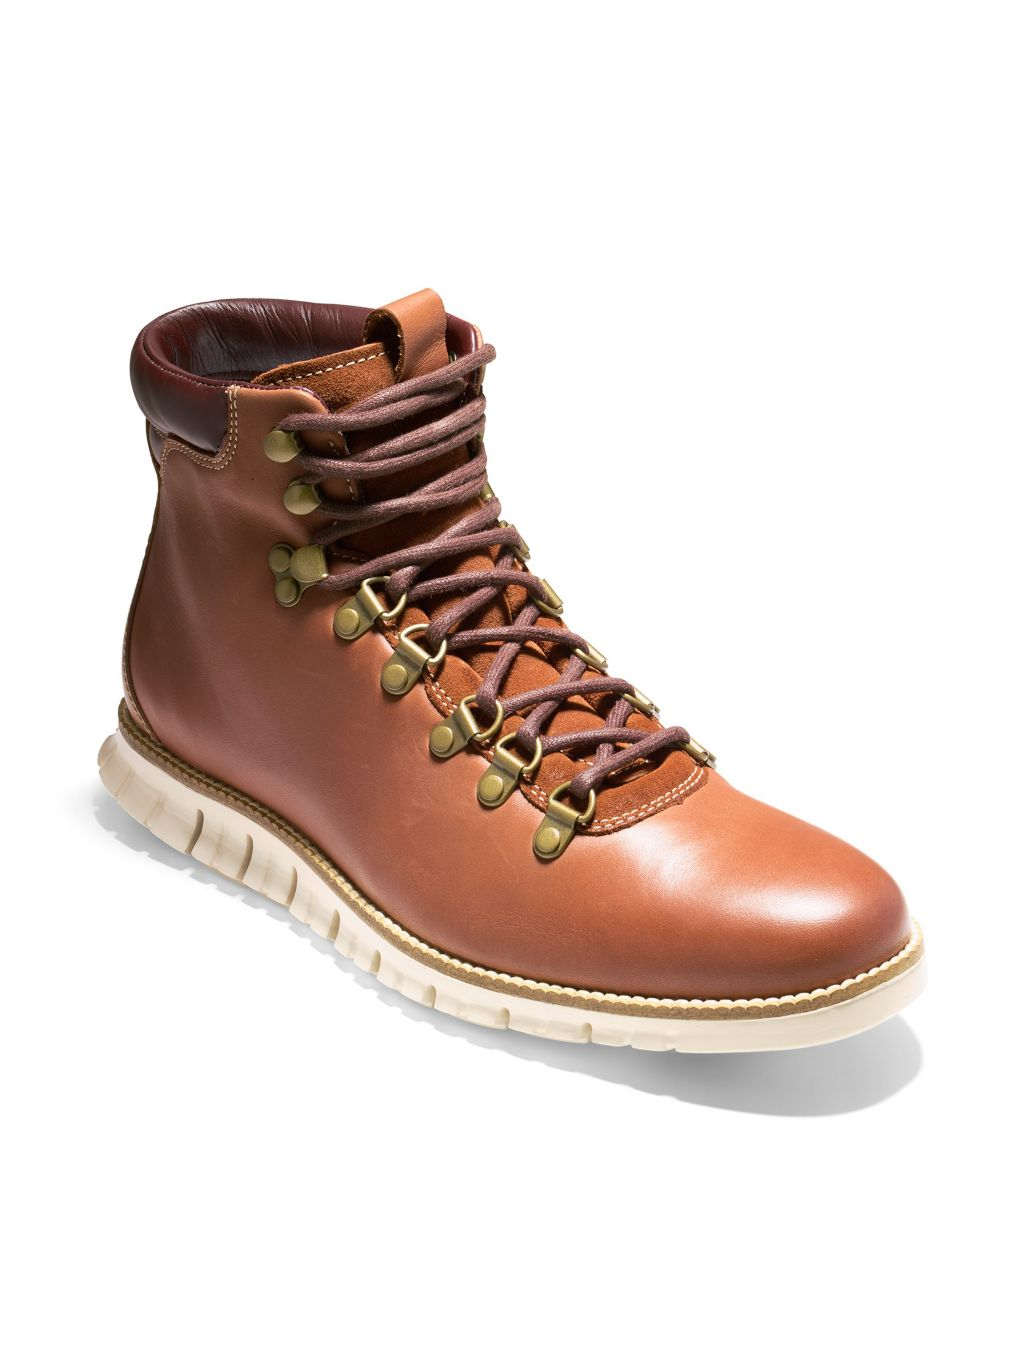 COLE HAAN GRAND OS Zerogrand Hiker II Leather Boots